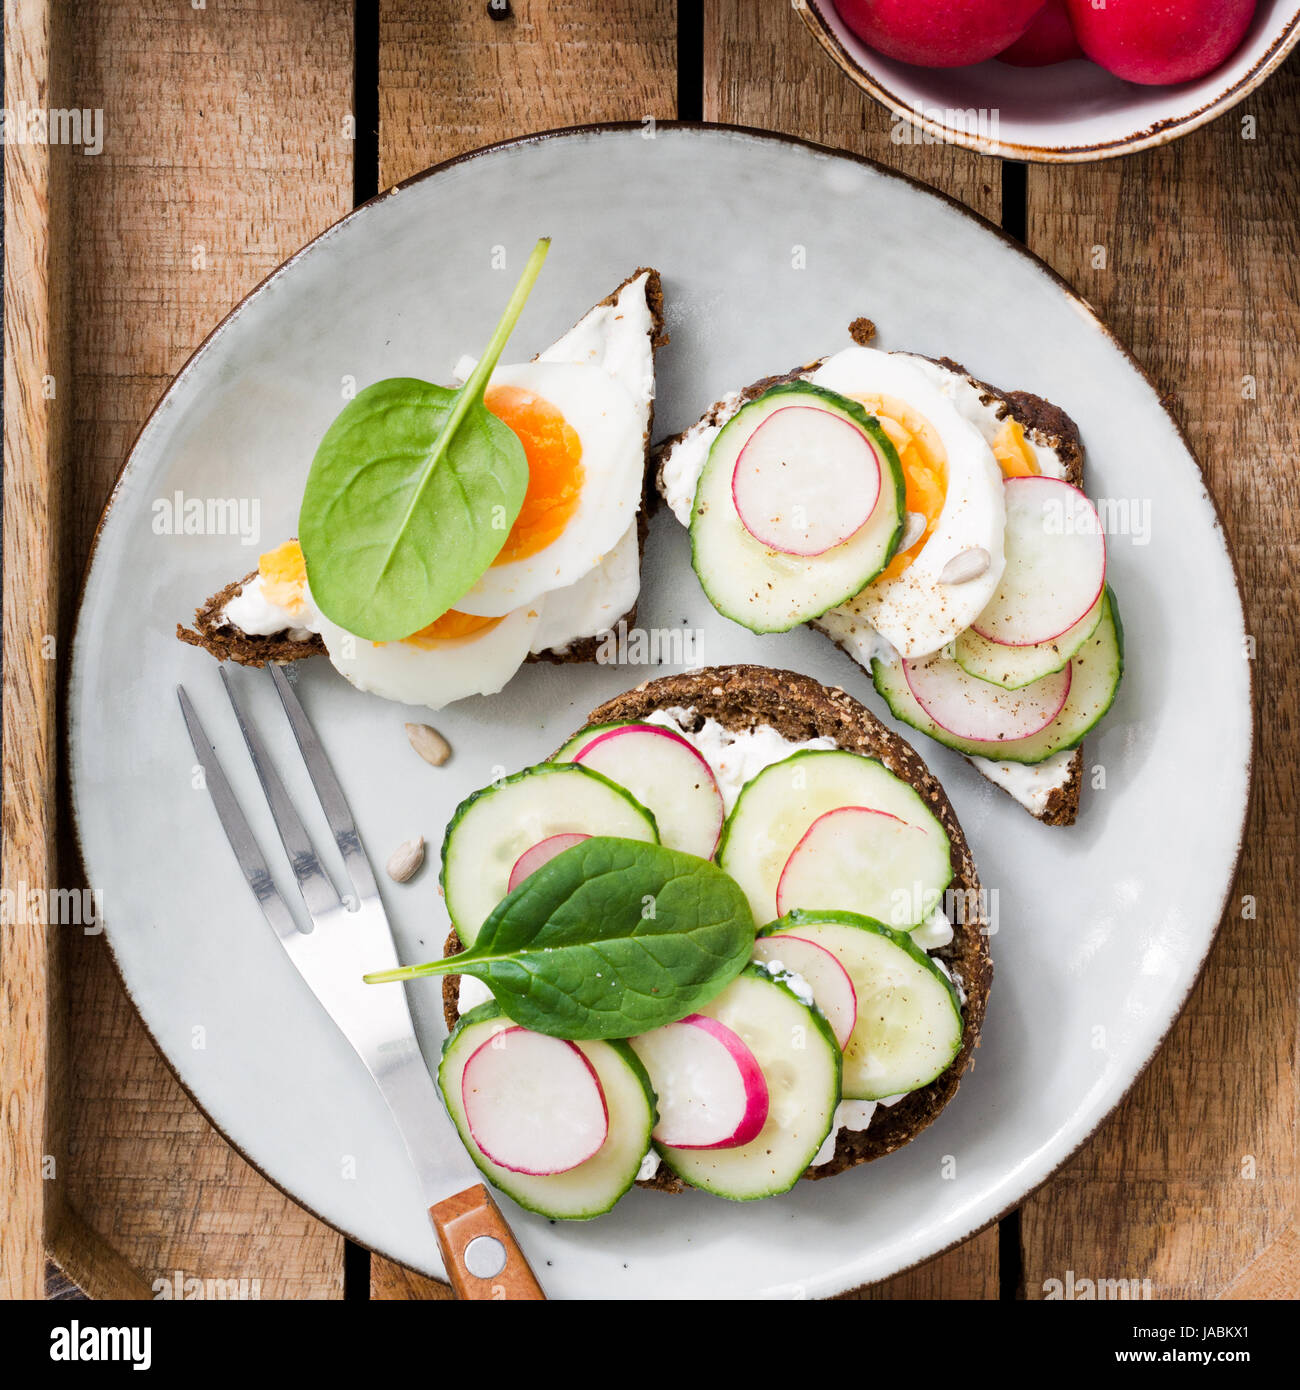 Fresh healthy toasts on plate. Top view of toasts with radish, cucumber, goat cheese, boiled egg and spinach. Square - Stock Image